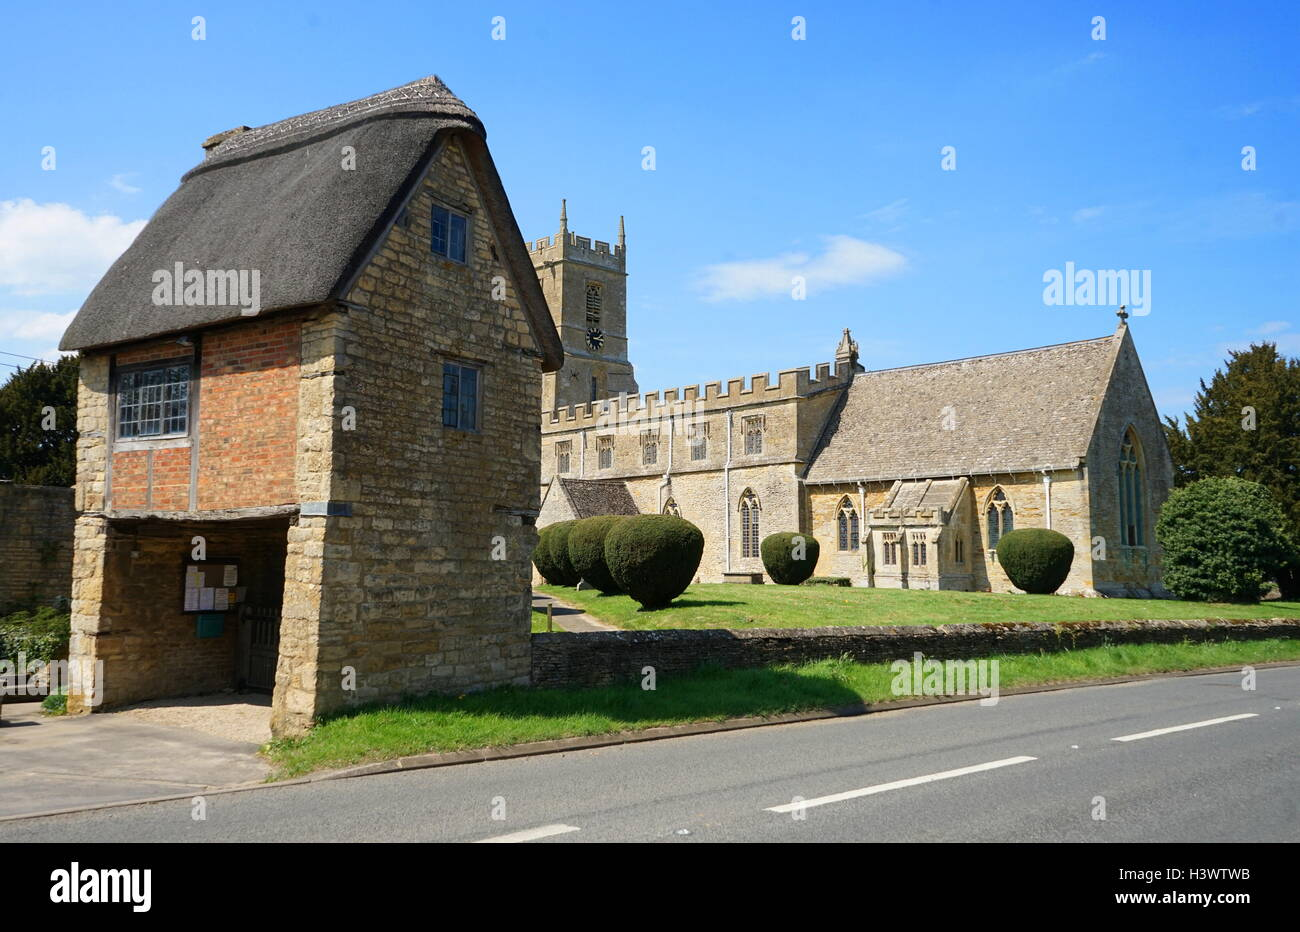 The Lych Gate at St Peter & St Paul C Of E Church, Long Compton - Stock Image